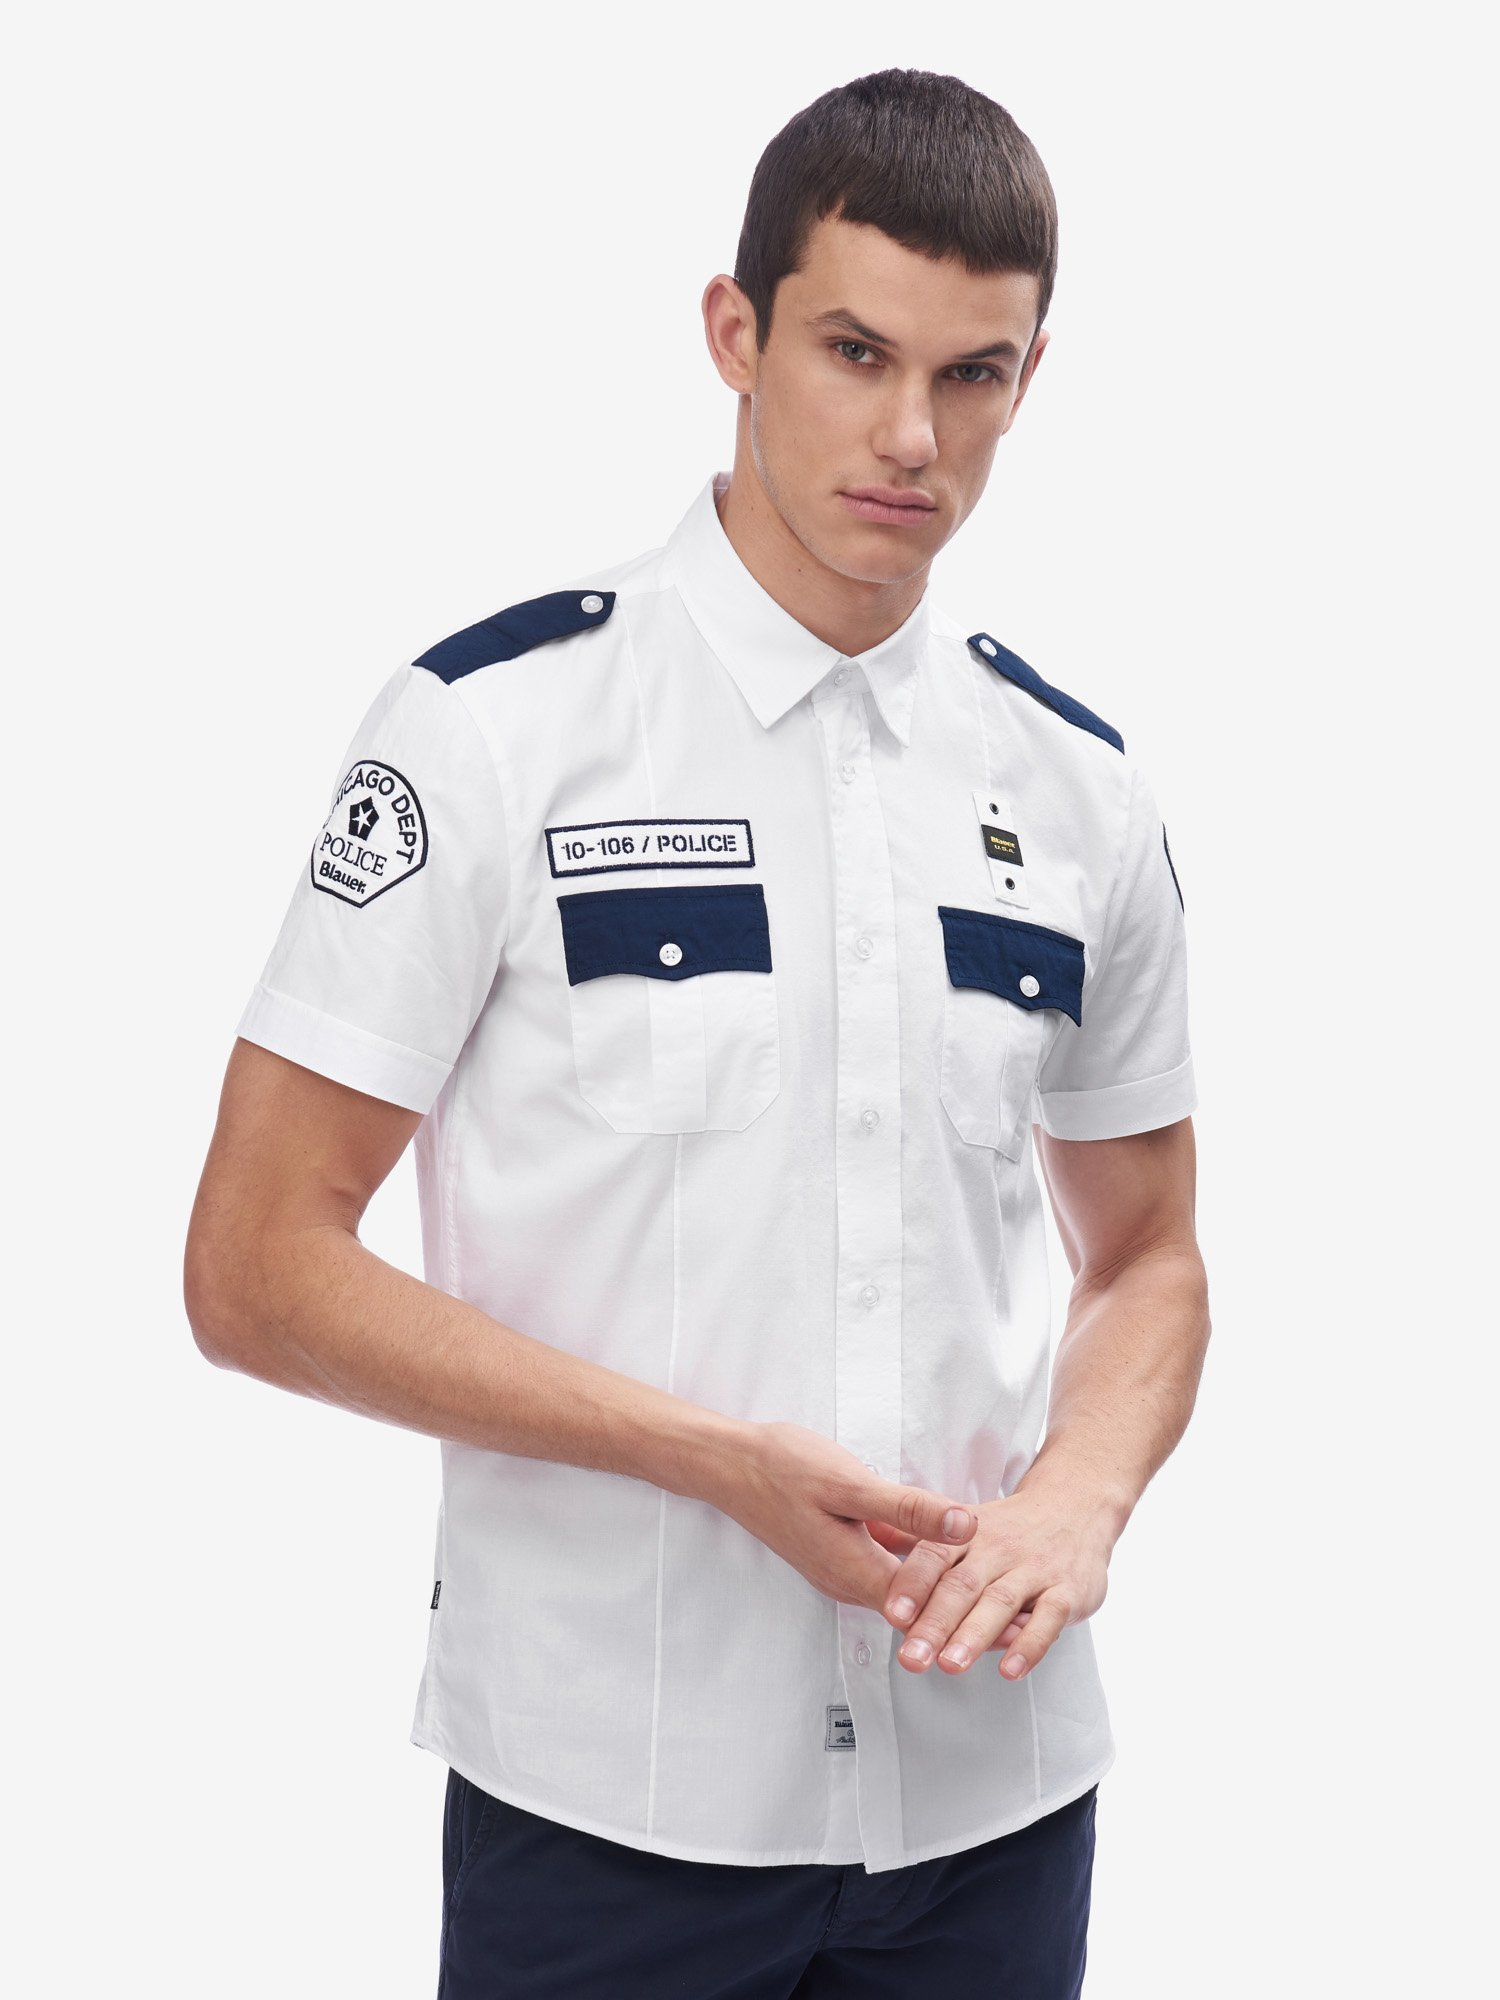 CHICAGO POLICE SHIRT - Blauer